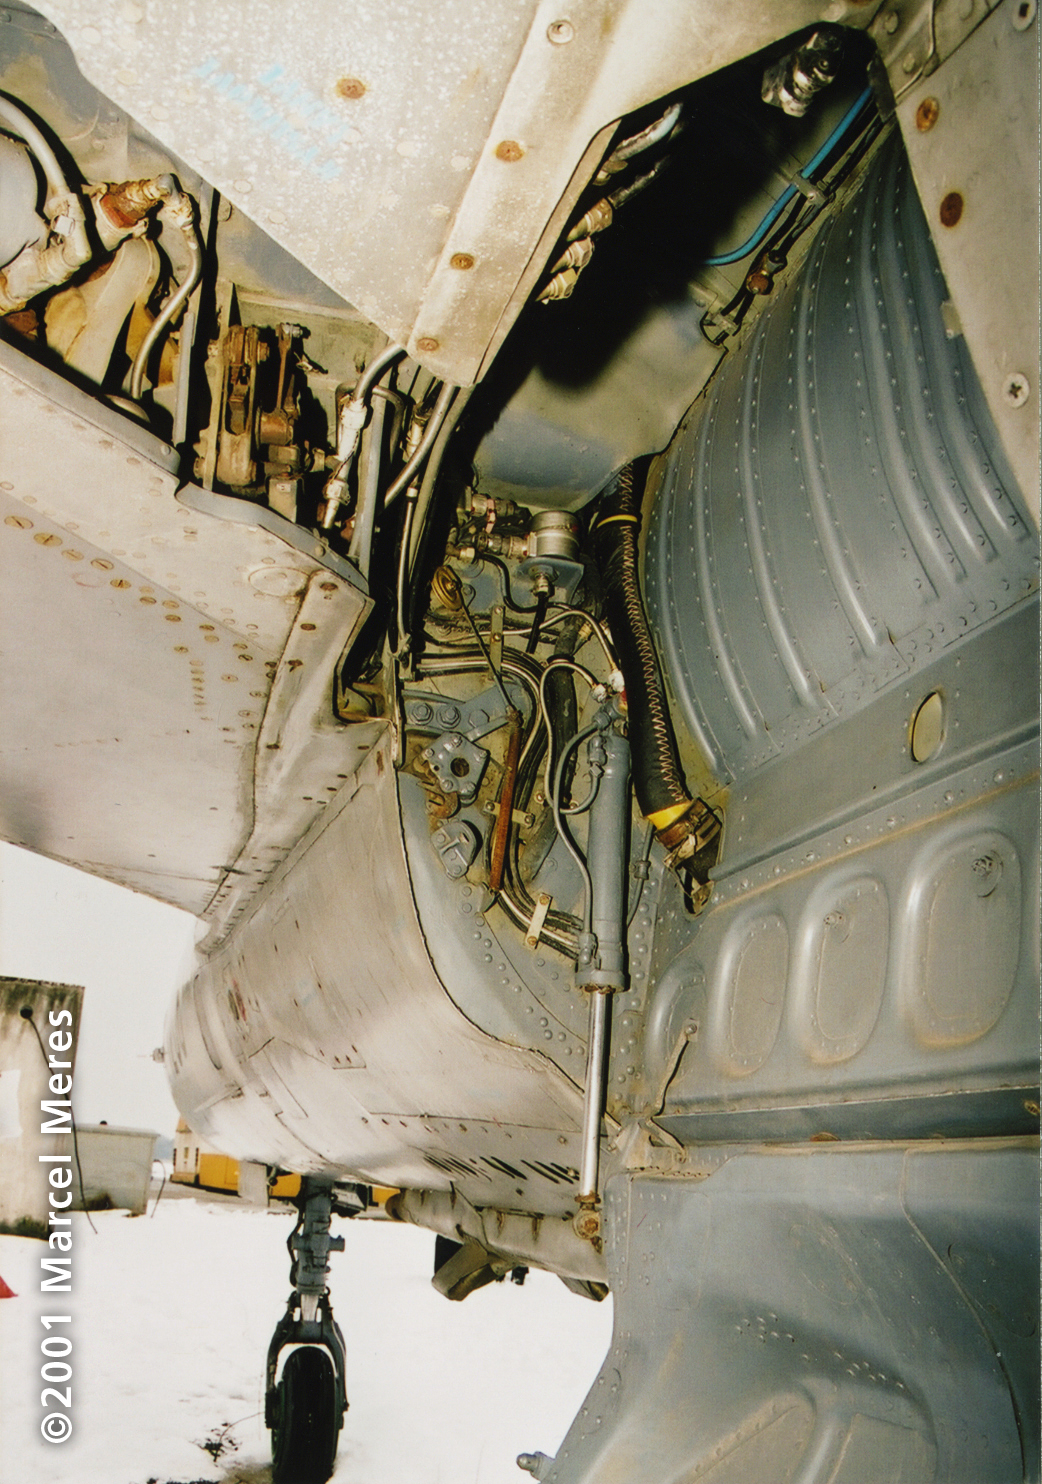 [MiG-21_M_Main_undercarriage_well_left_looking_forward]